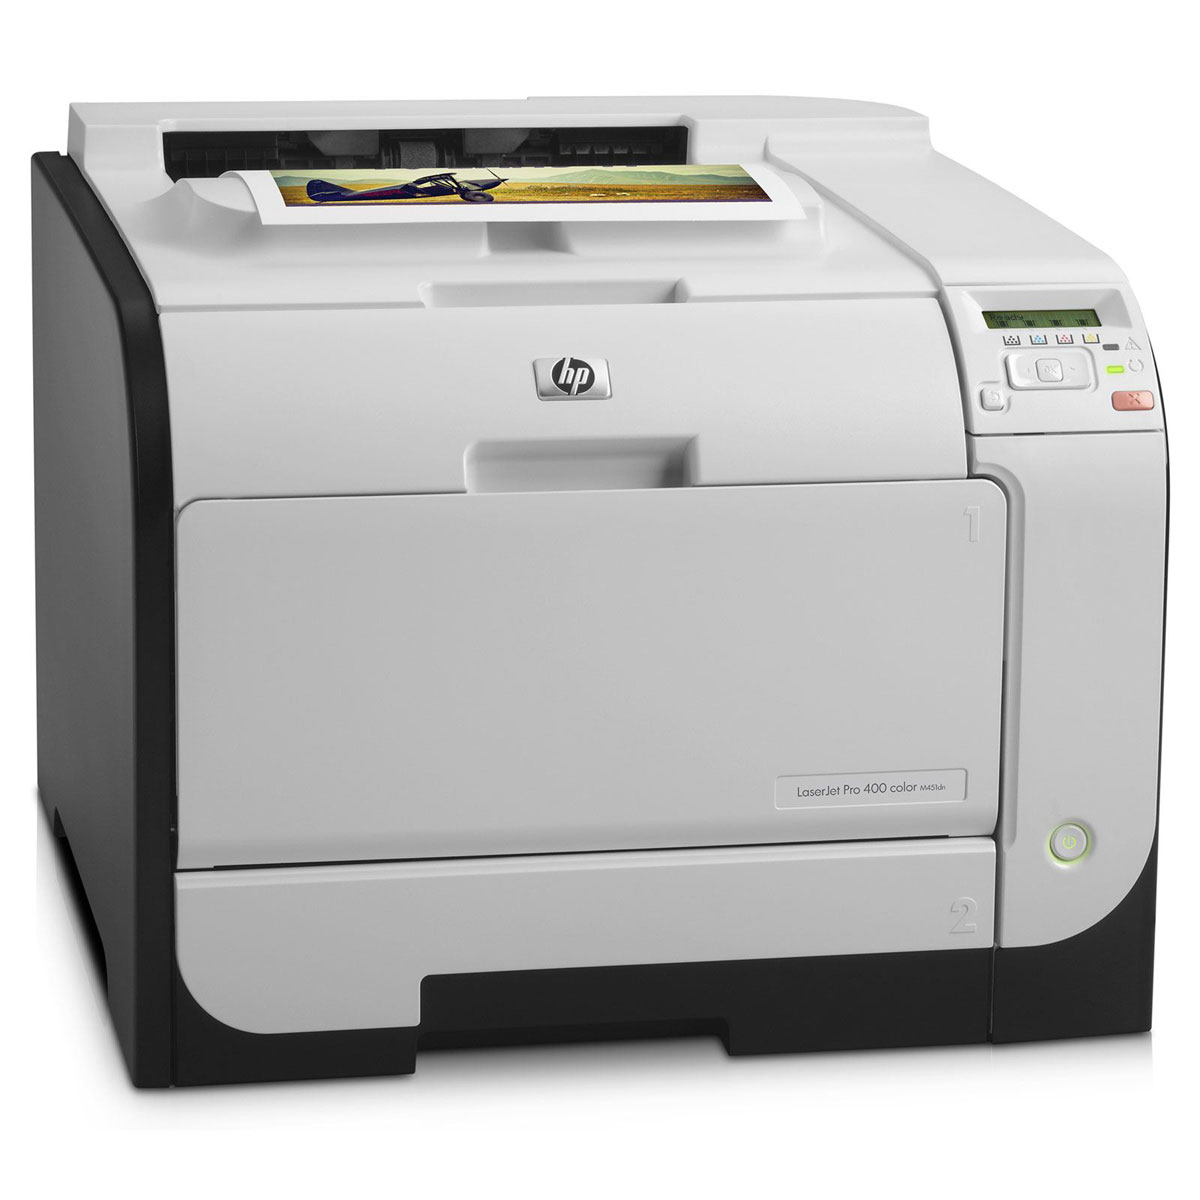 hp laserjet pro m451nw ce956a imprimante laser hp sur. Black Bedroom Furniture Sets. Home Design Ideas